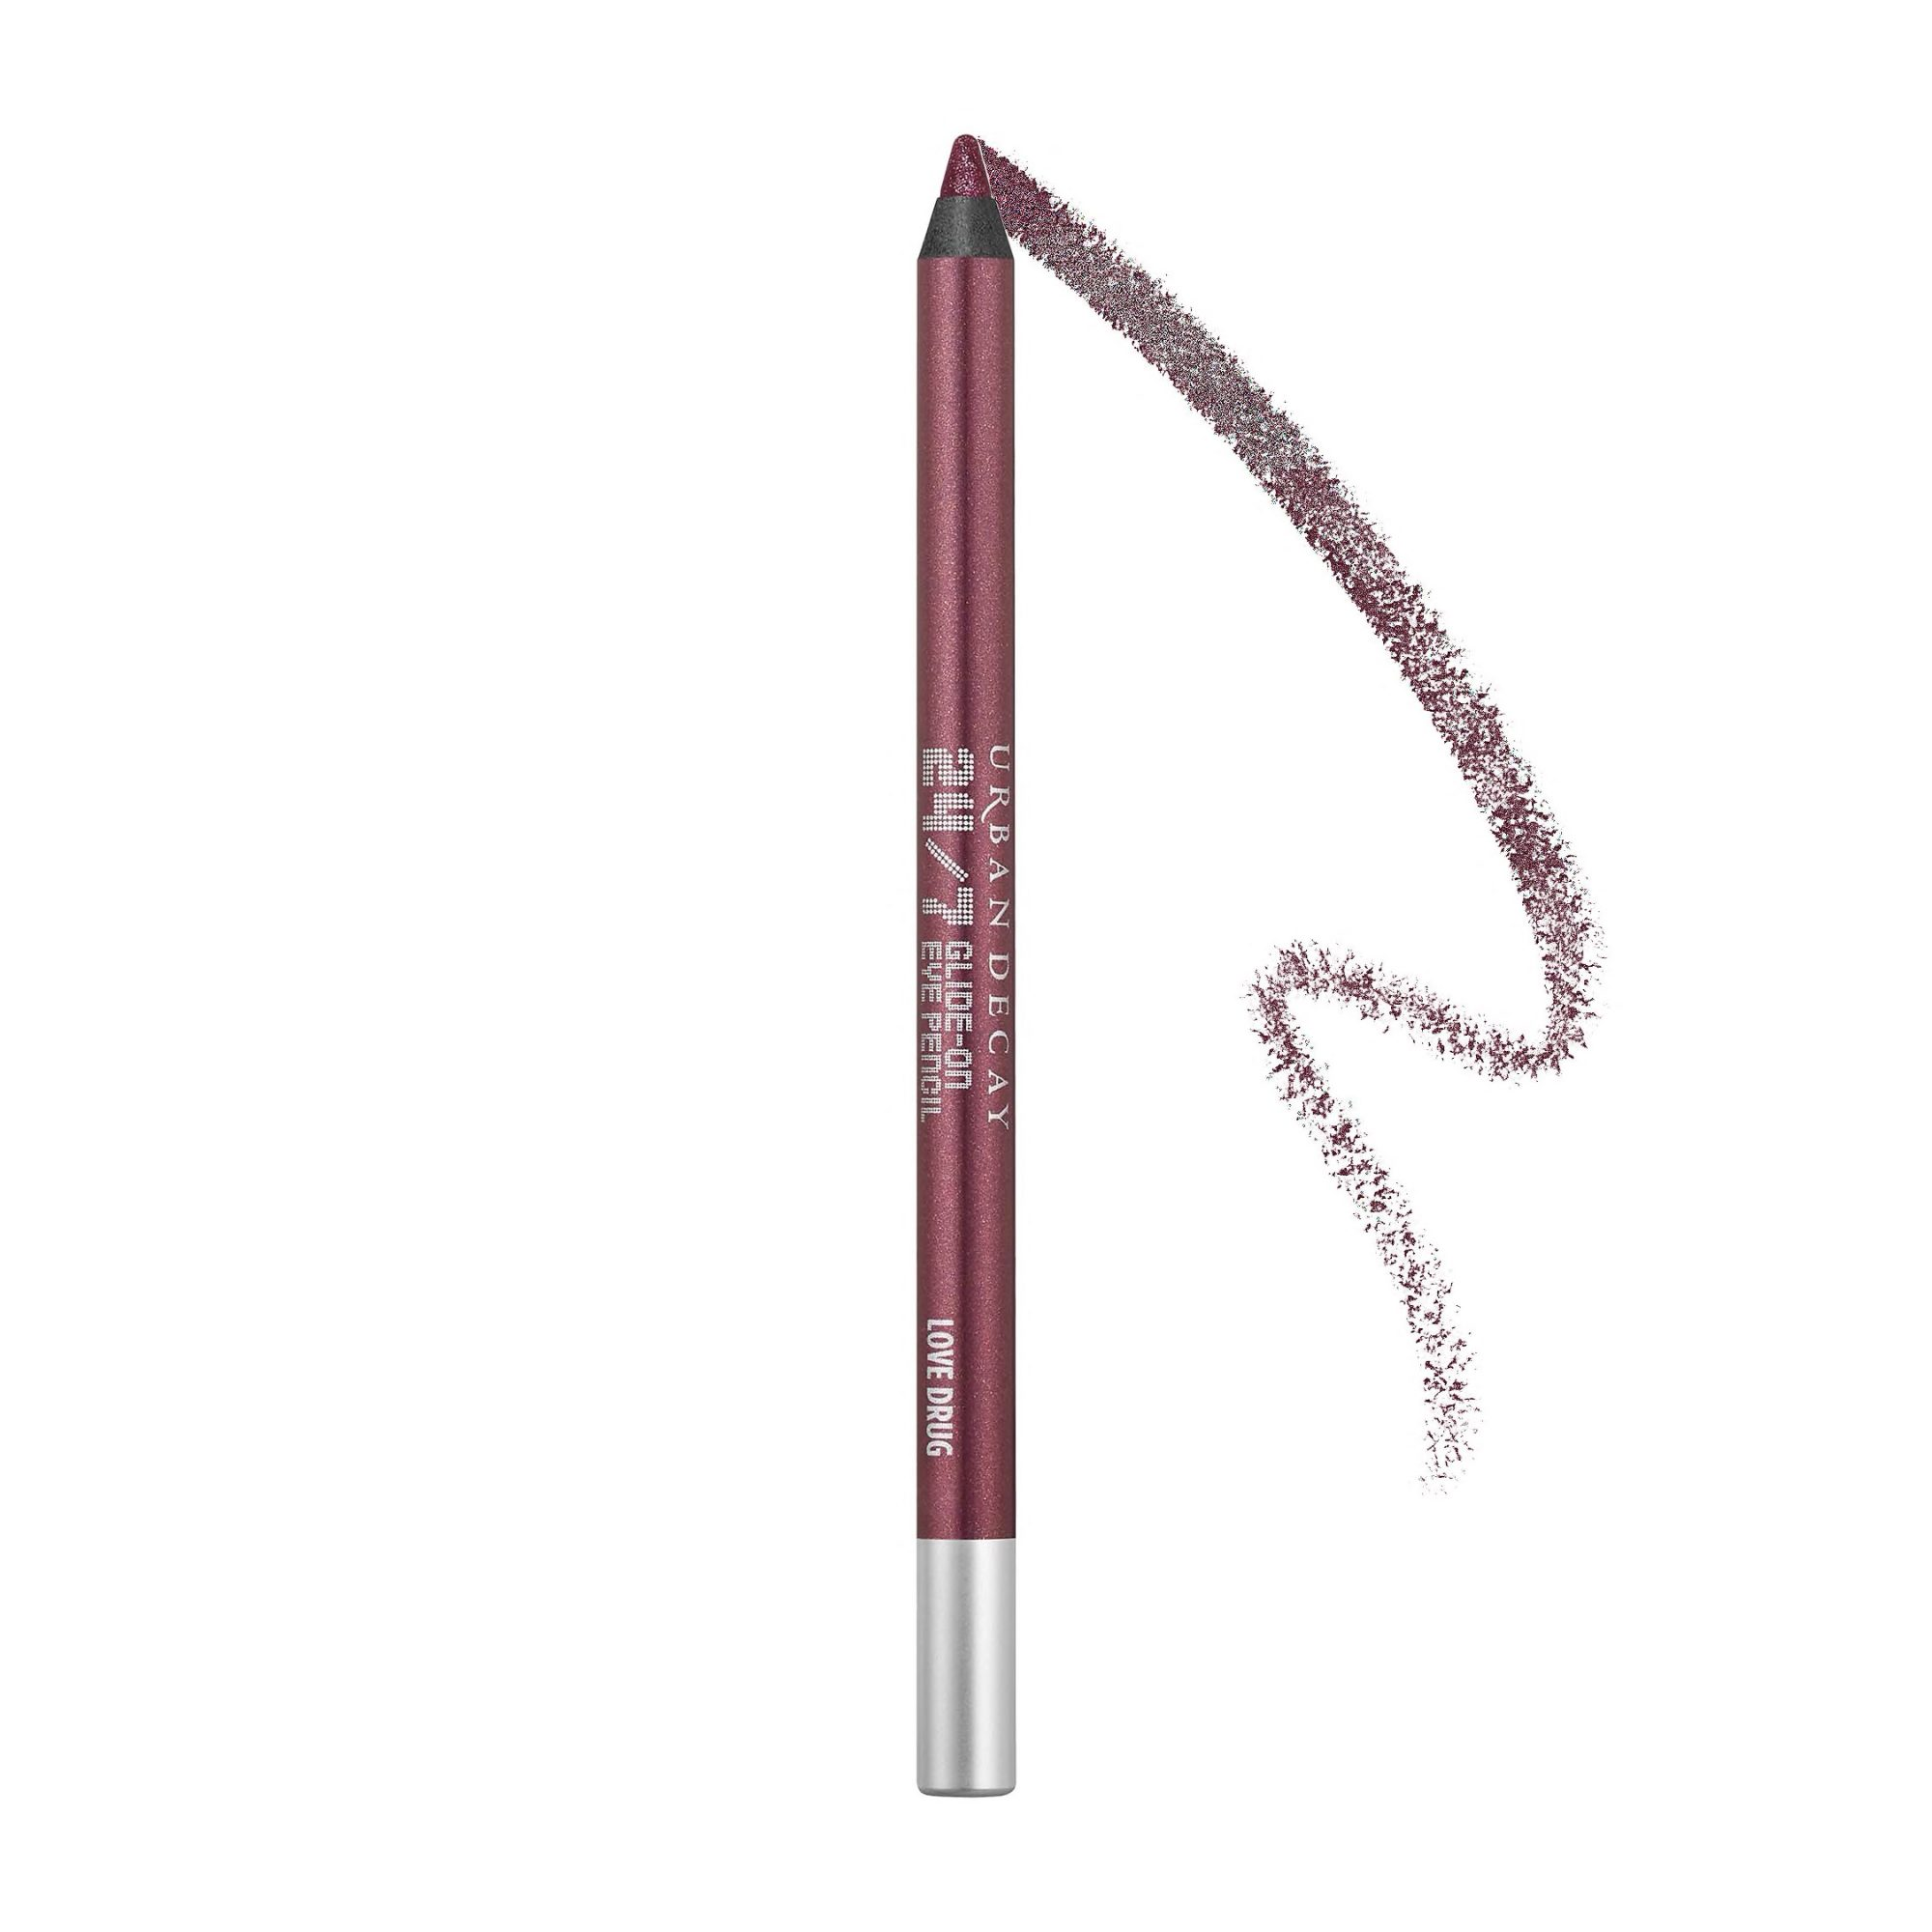 Revlon Photoready Kajal Matte Eye Pencil in Matte Marine